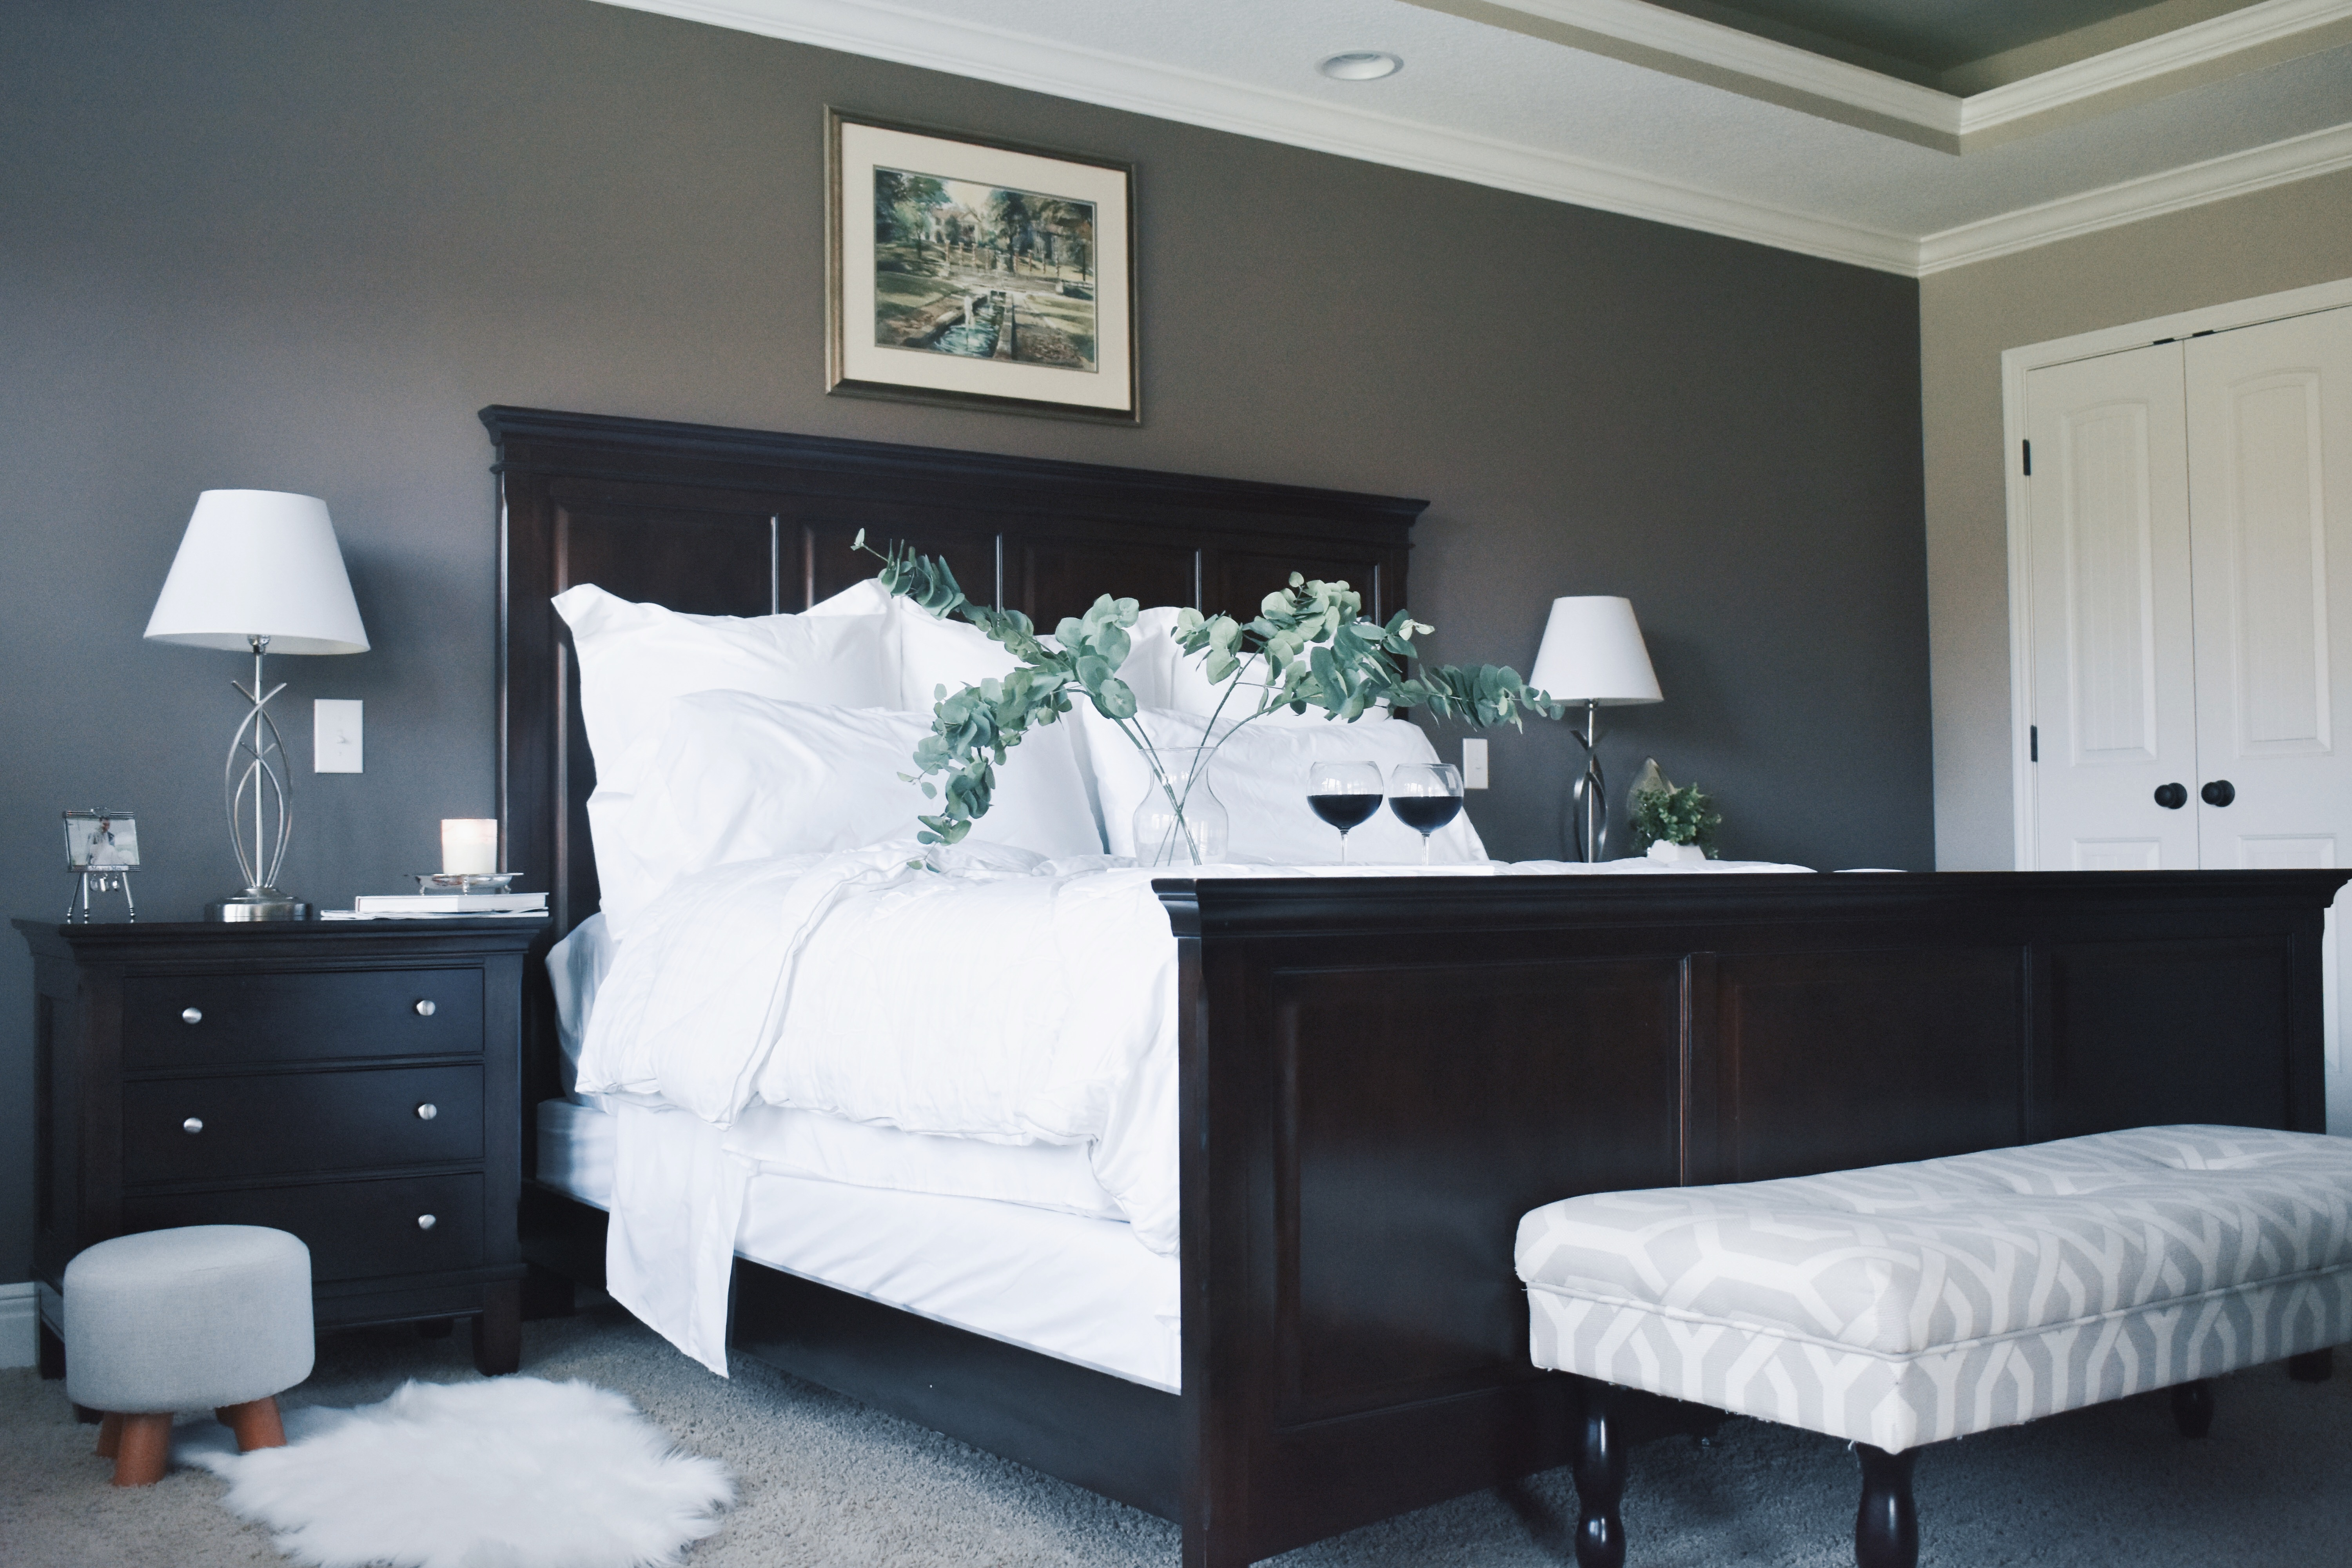 #AD White Bedding Inspo for Master Bedroom - Master Bedroom Makeover: Bright and airy white bedding creates a luxurious feeling and provides a gorgeous contrast to wood furniture in this master bedroom makeover. White Bedding with Wood Furniture inspo for a minimalist master bedroom design. Bedding courtesy of @Kohls #WinterBedding #KohlsFinds